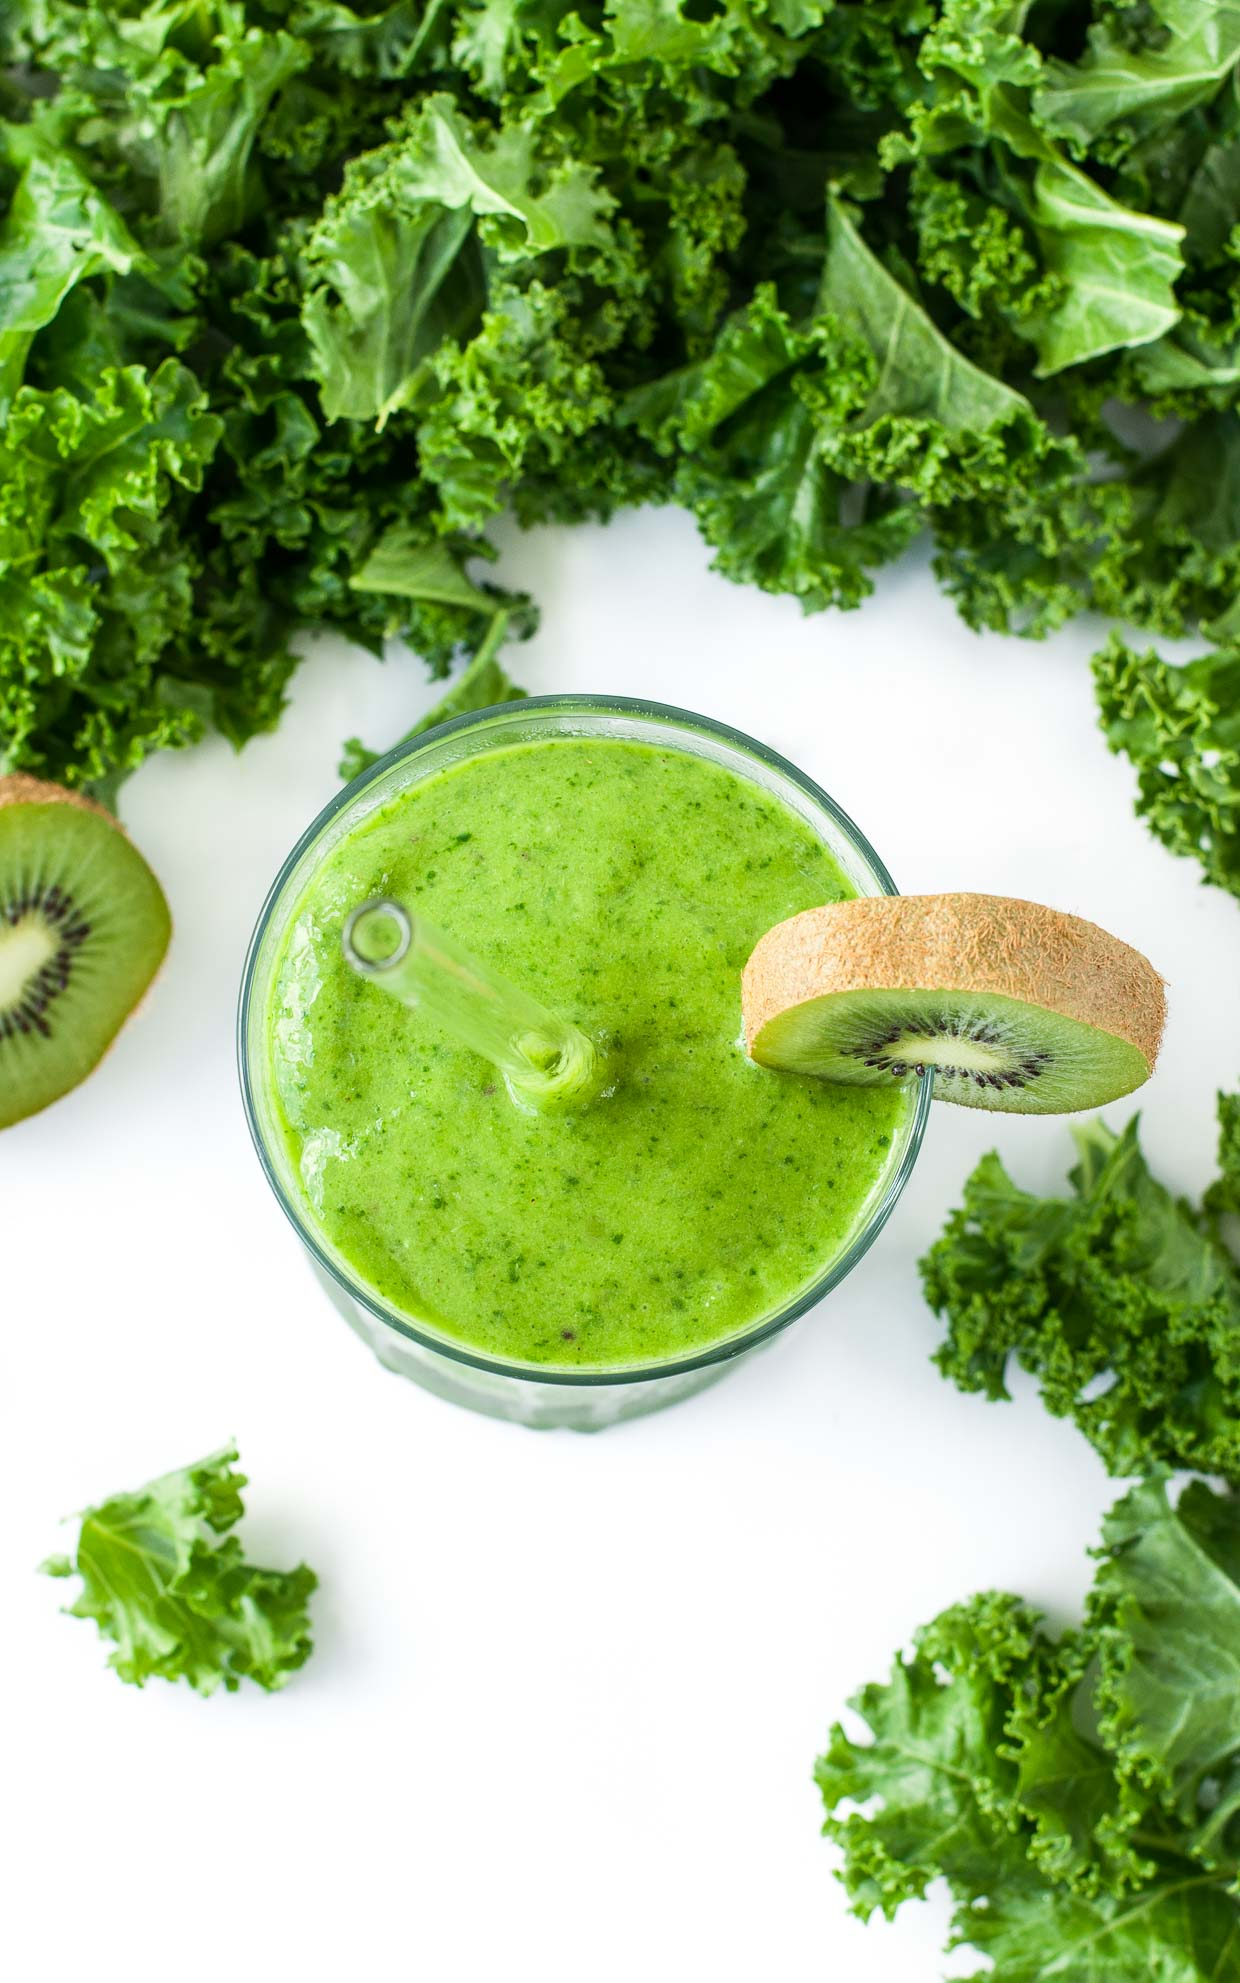 Shake up your smoothie routine with this gorgeous green smoothie. Boasting 2 cups of kale, this Tropical Mango Kale Smoothie is nutrient-packed and full of tasty tropical flavor!